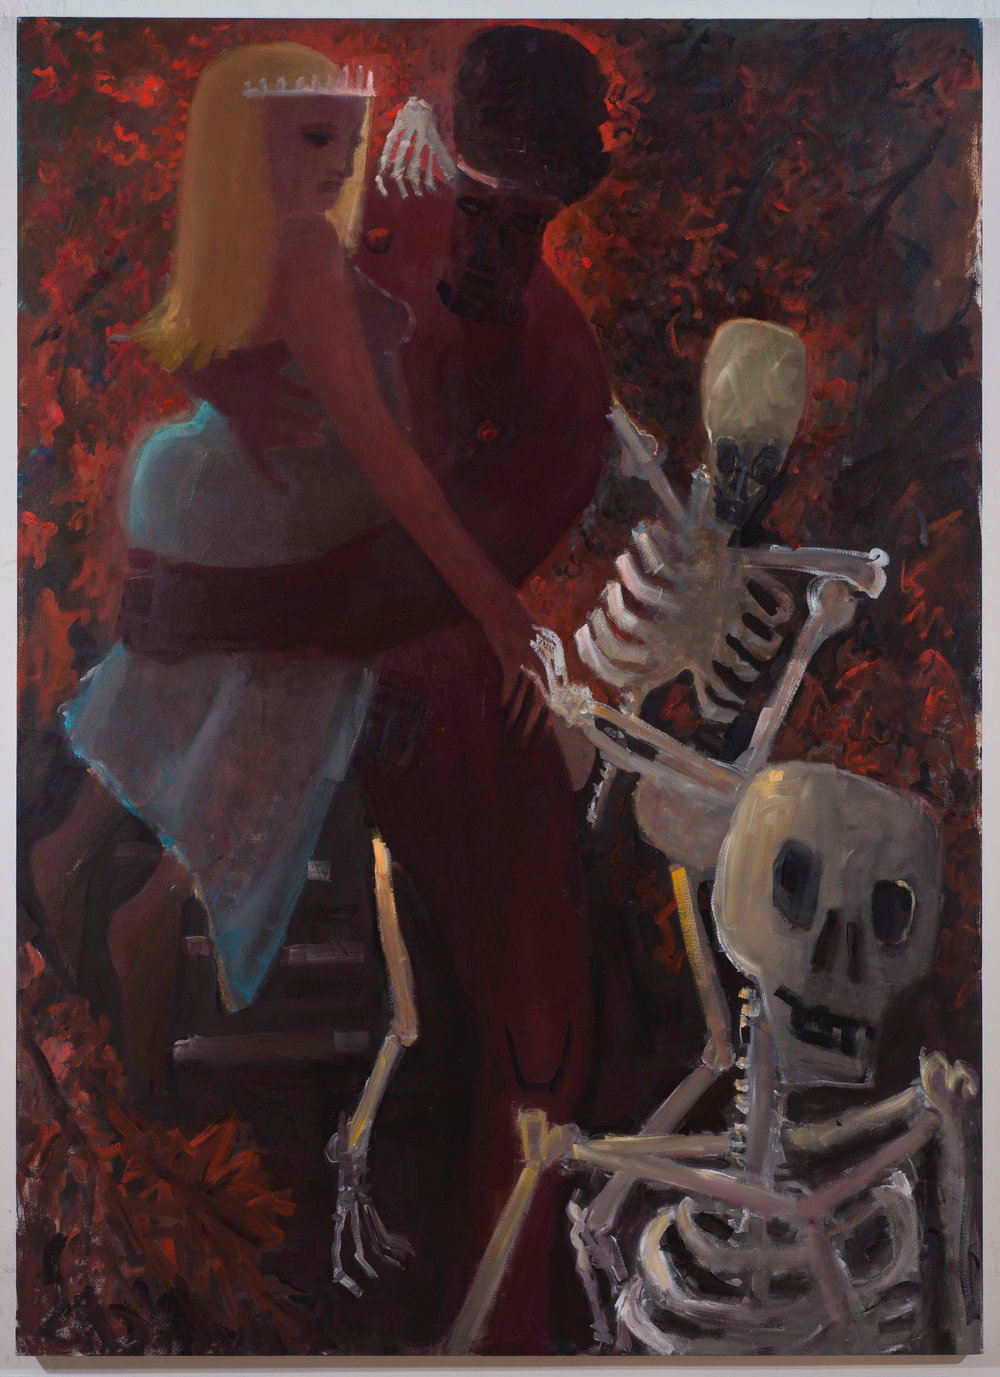 Hades and Persephone , 2017 oil on canvas 56 x 64 in.